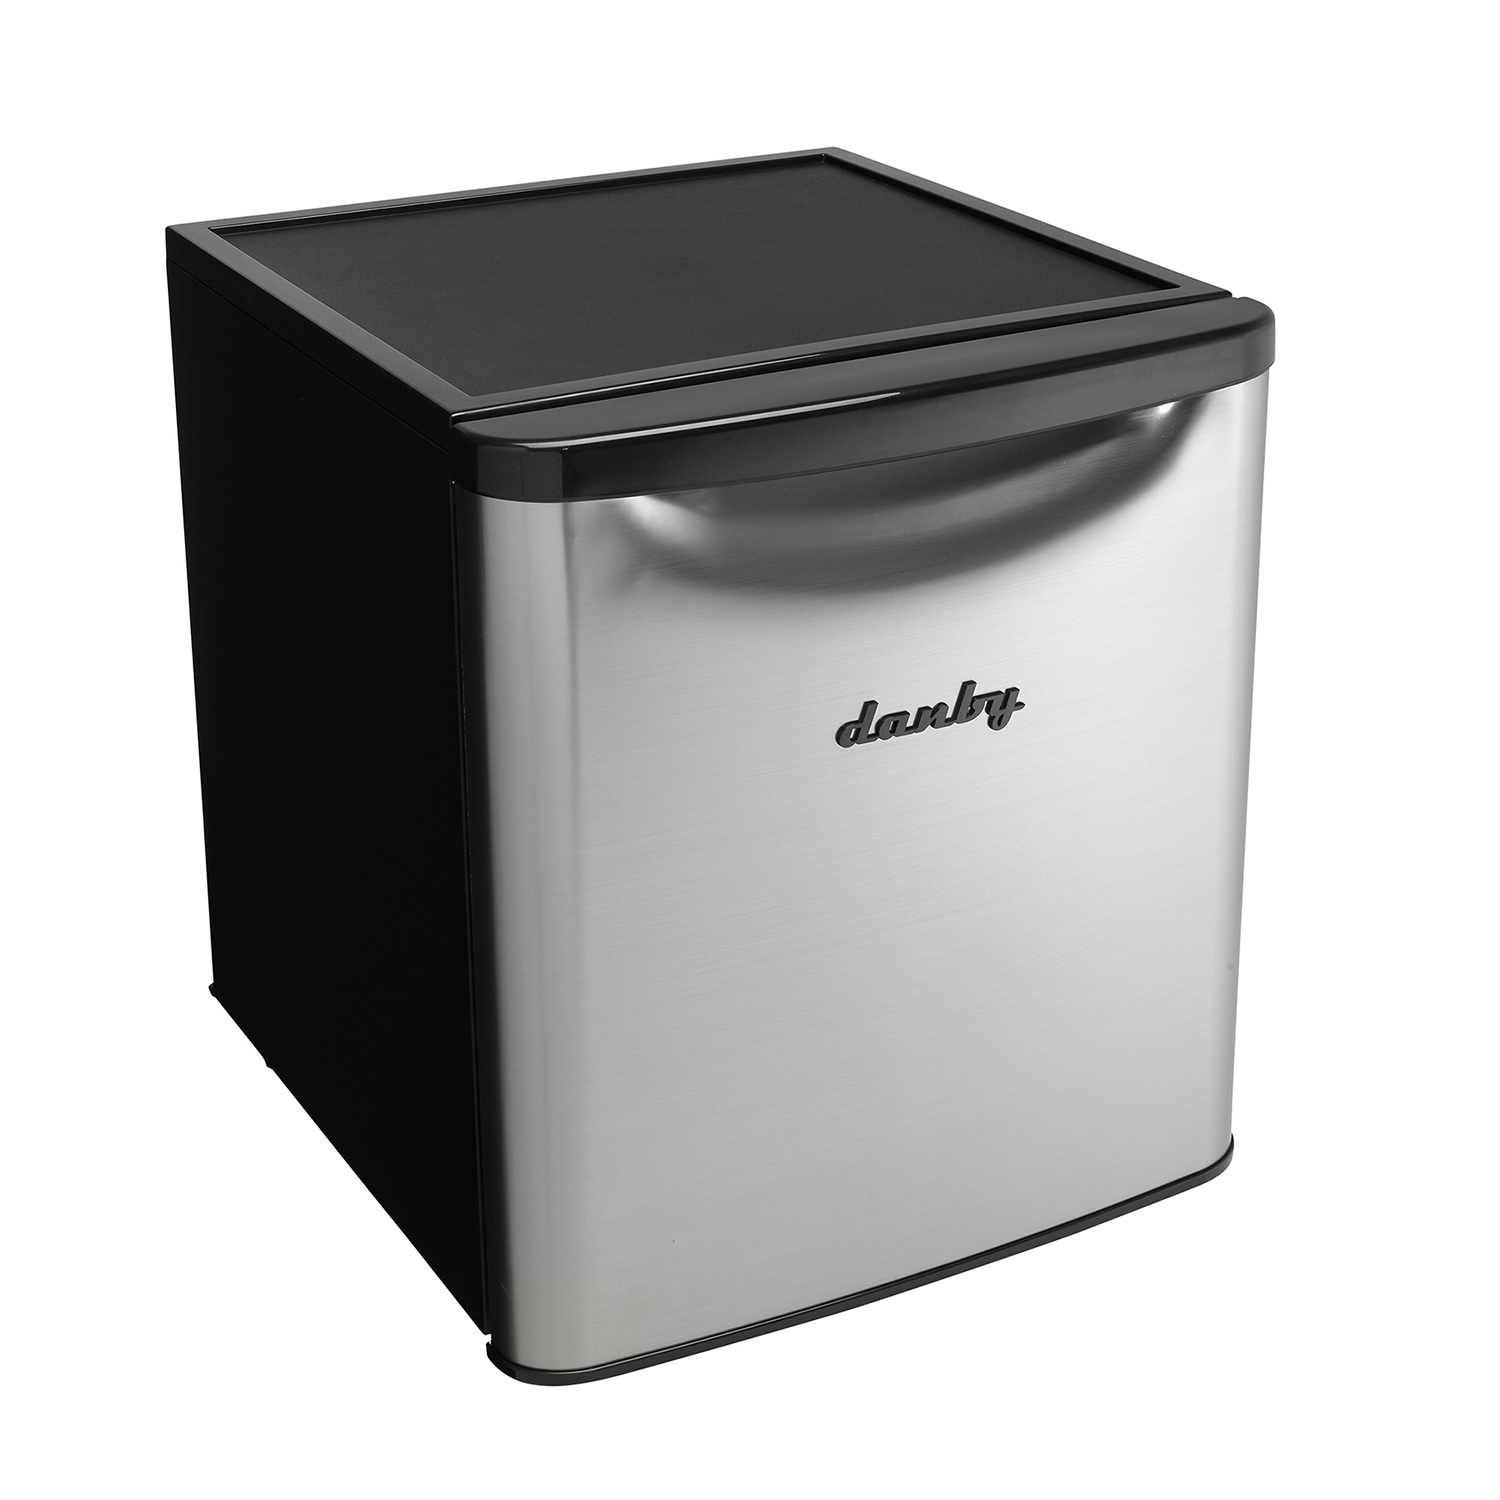 Danby-1-7-Cubic-Foot-Contemporary-Classic-Compact-Refrigerator-Stainless-Finish thumbnail 2